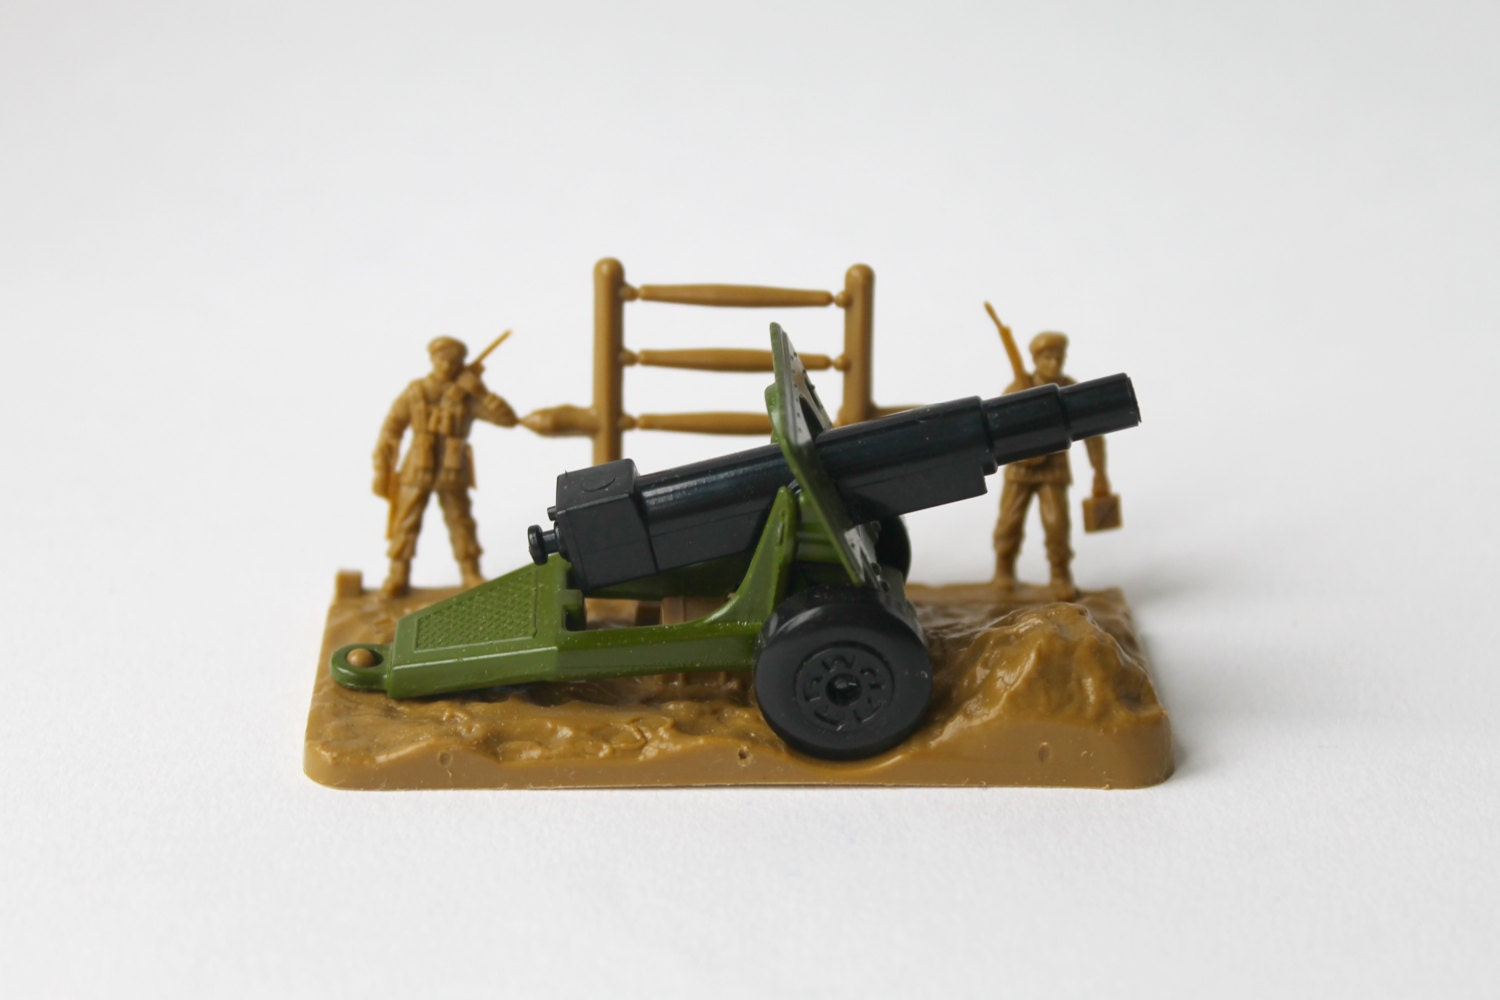 Vintage Matchbox superfast 32 field gun military cannon. Matchbox army field gun, military cannon, Made in England with original box.